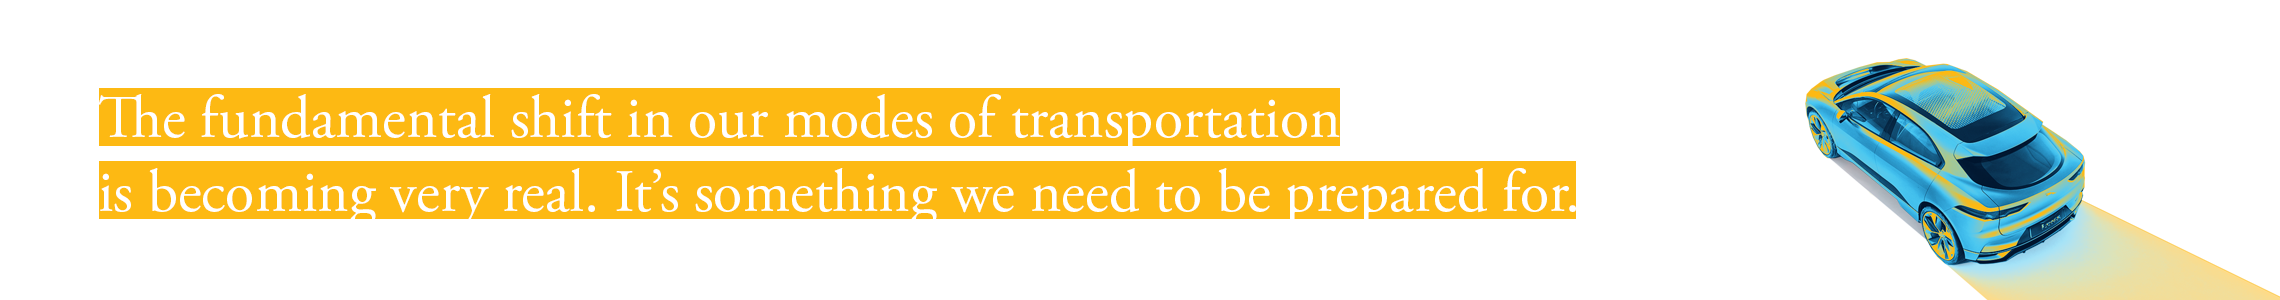 evbox manifesto electric mobility quote